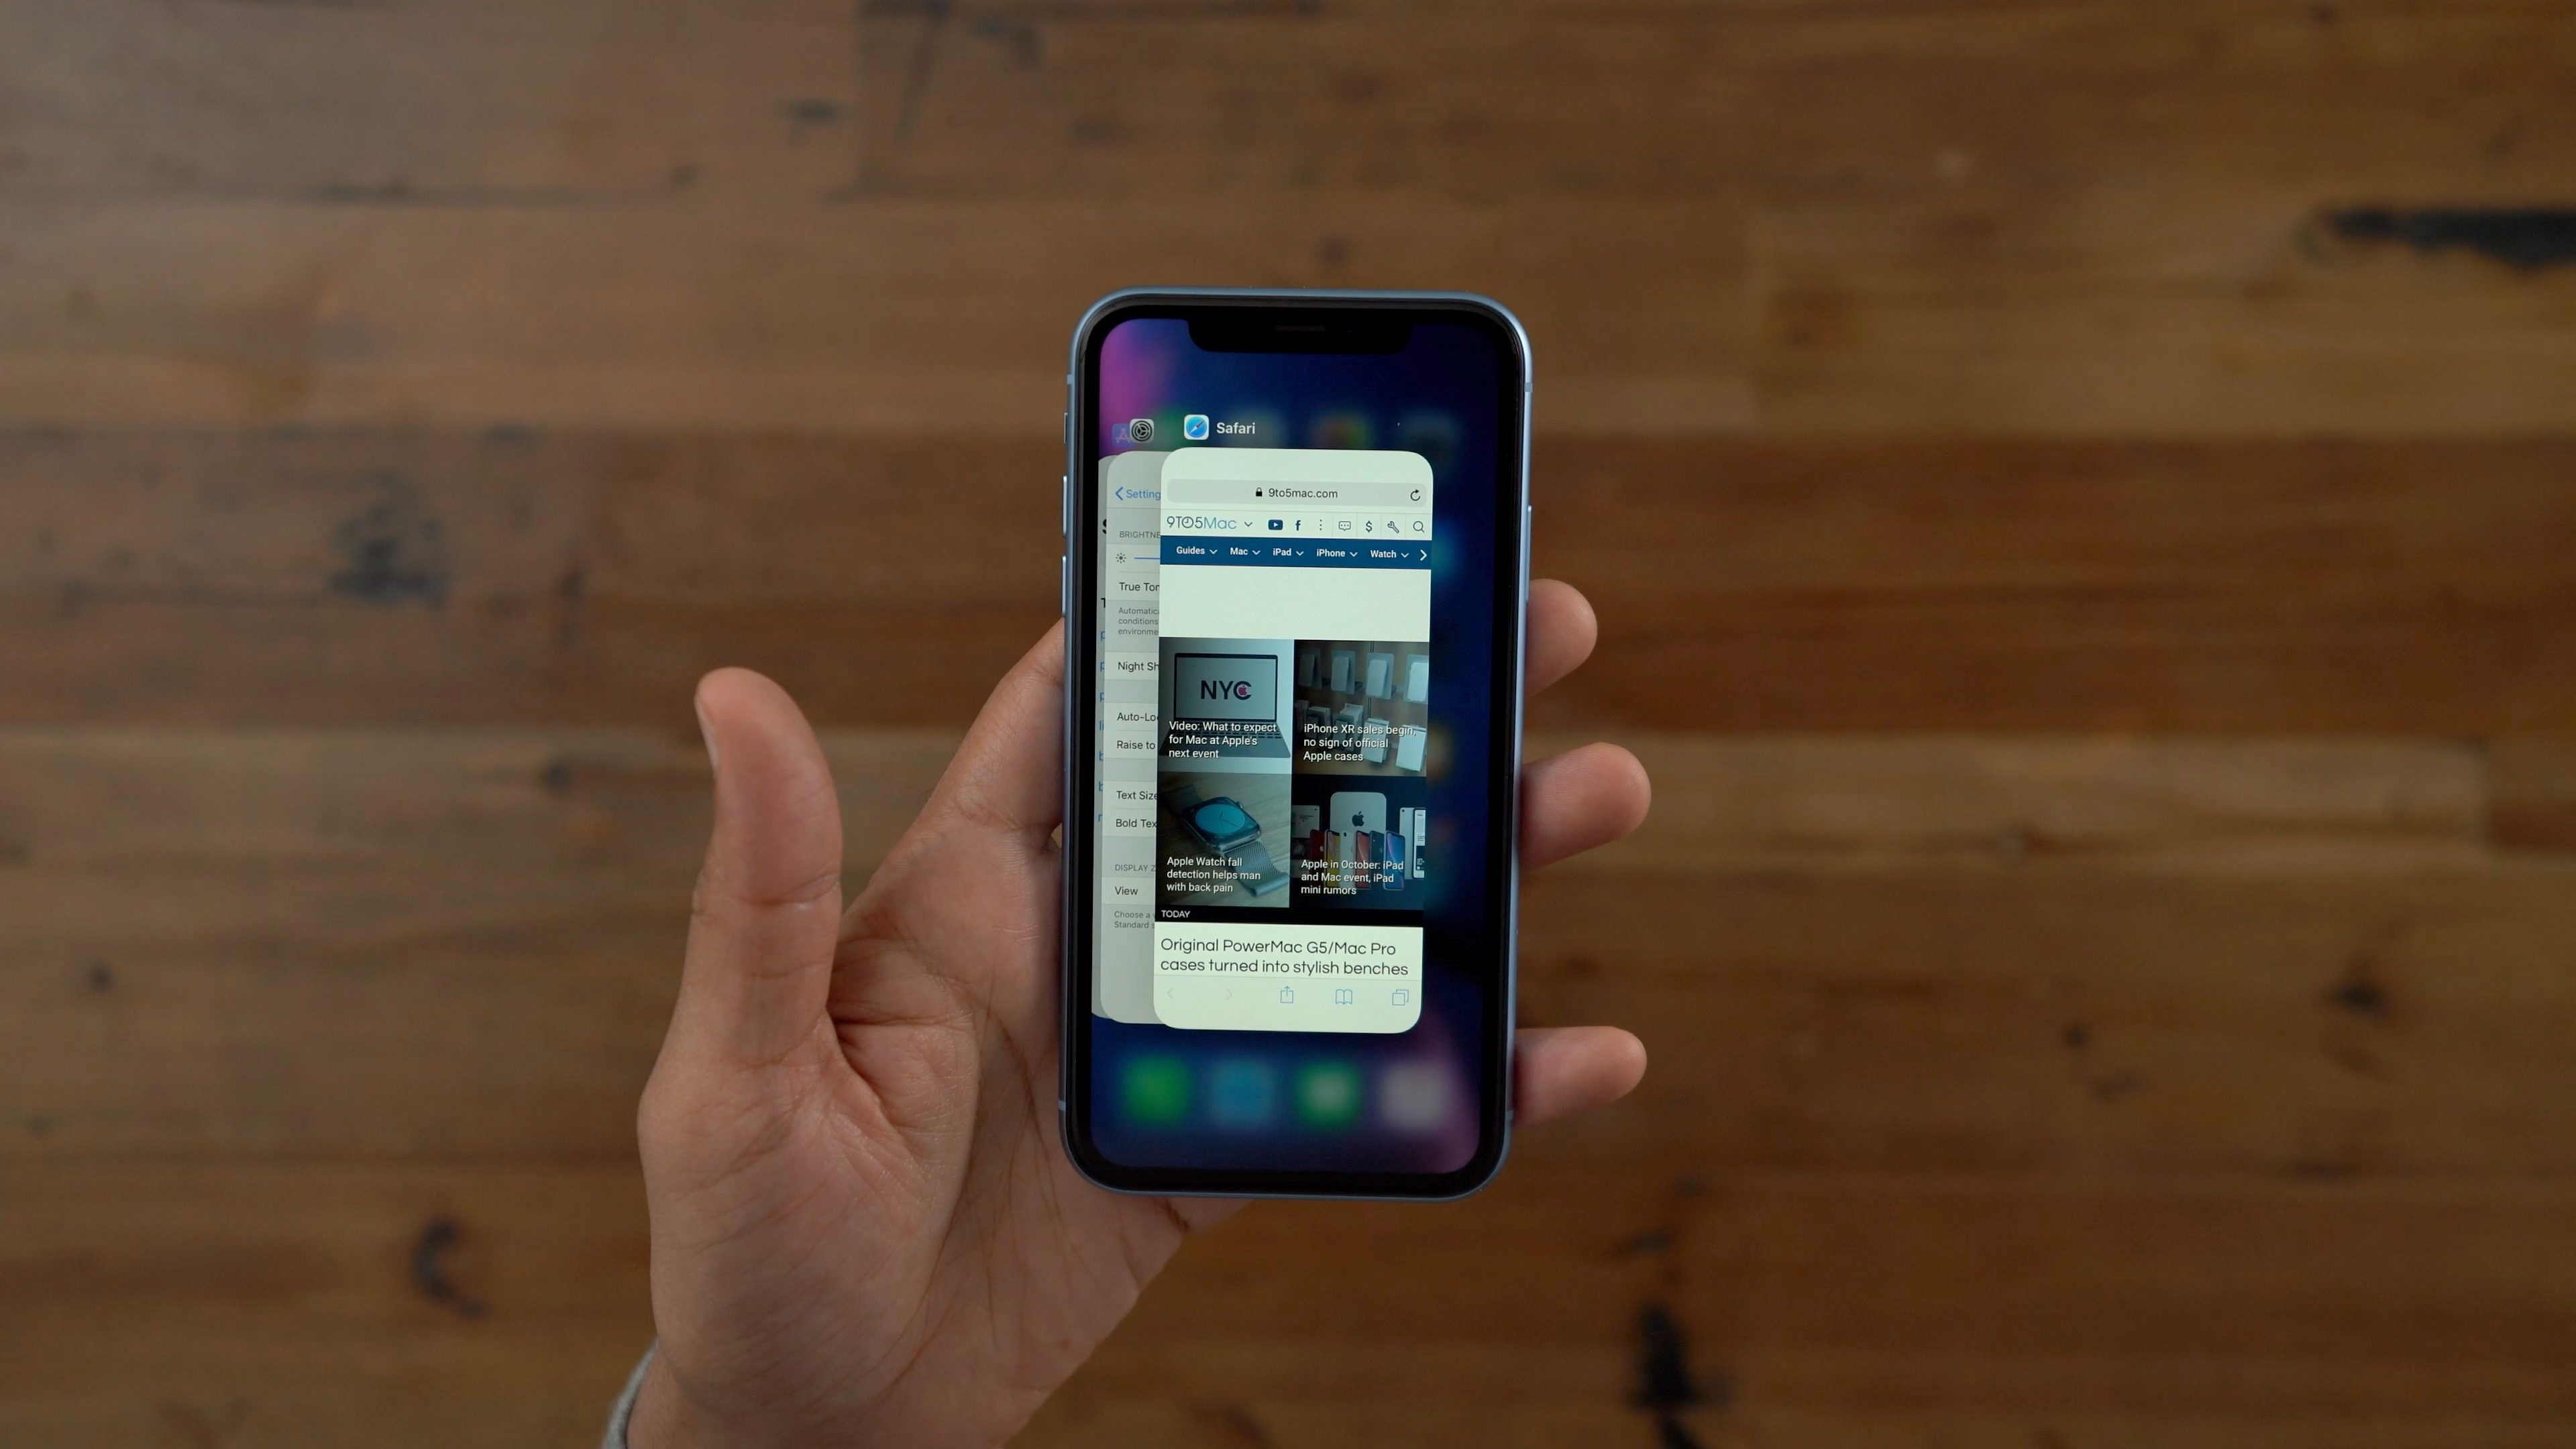 "<span href=""https://9to5mac.com/2019/11/30/which-iphone-should-i-buy-comparing-apples-current-smartphone-lineup-video/"">Que el iPhone debo comprar? La comparación de Apple smartphone actual alineación de [Video]</a>"